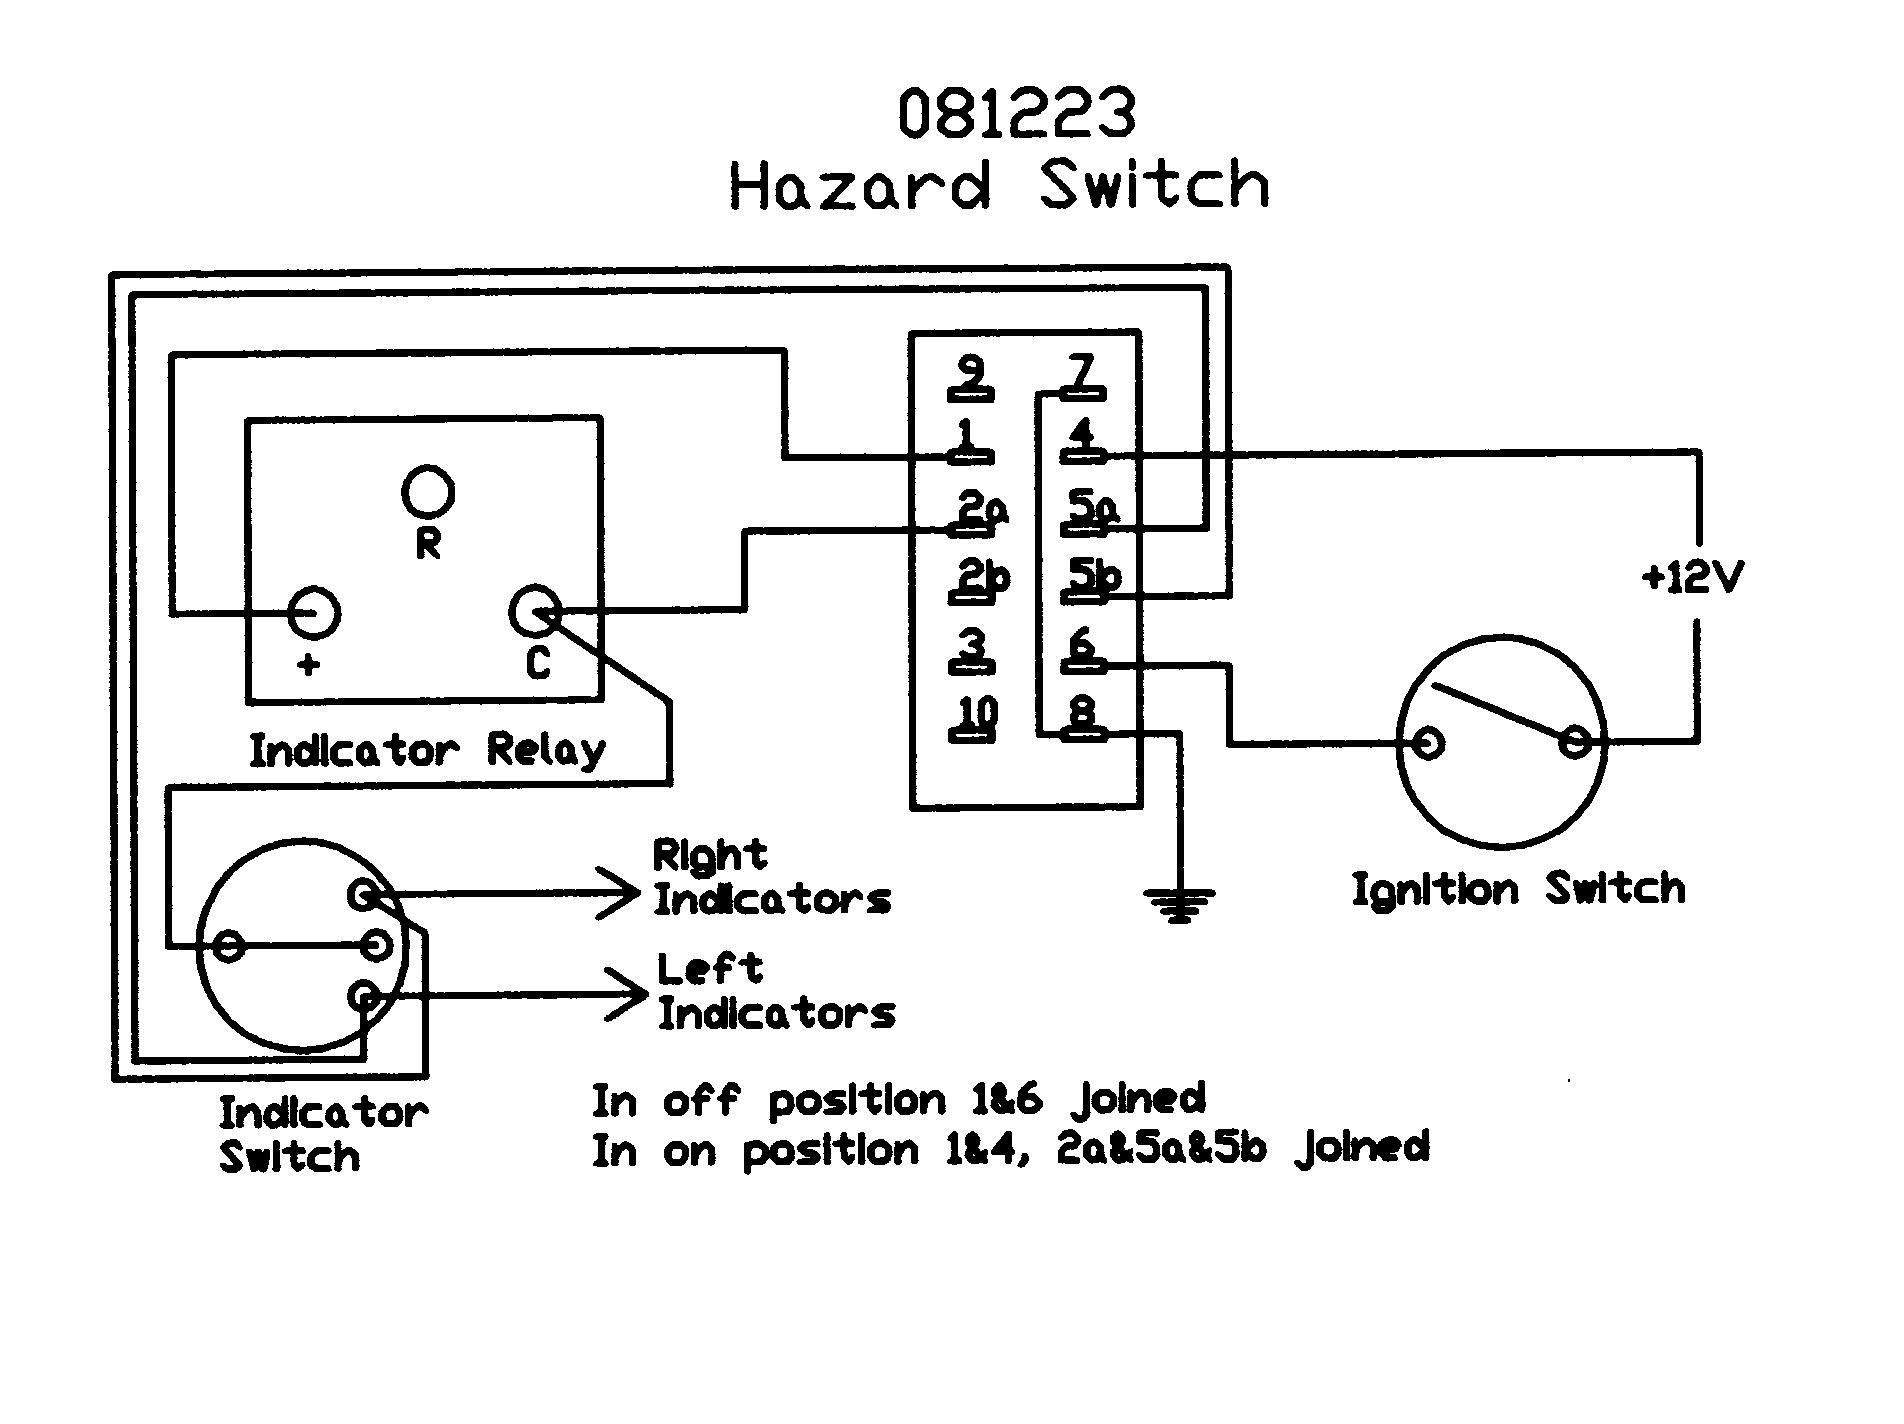 Warn Rocker Switch Wiring Diagram Free Download Guide And Simple Diagrams Rh 22 Studio011 De 3